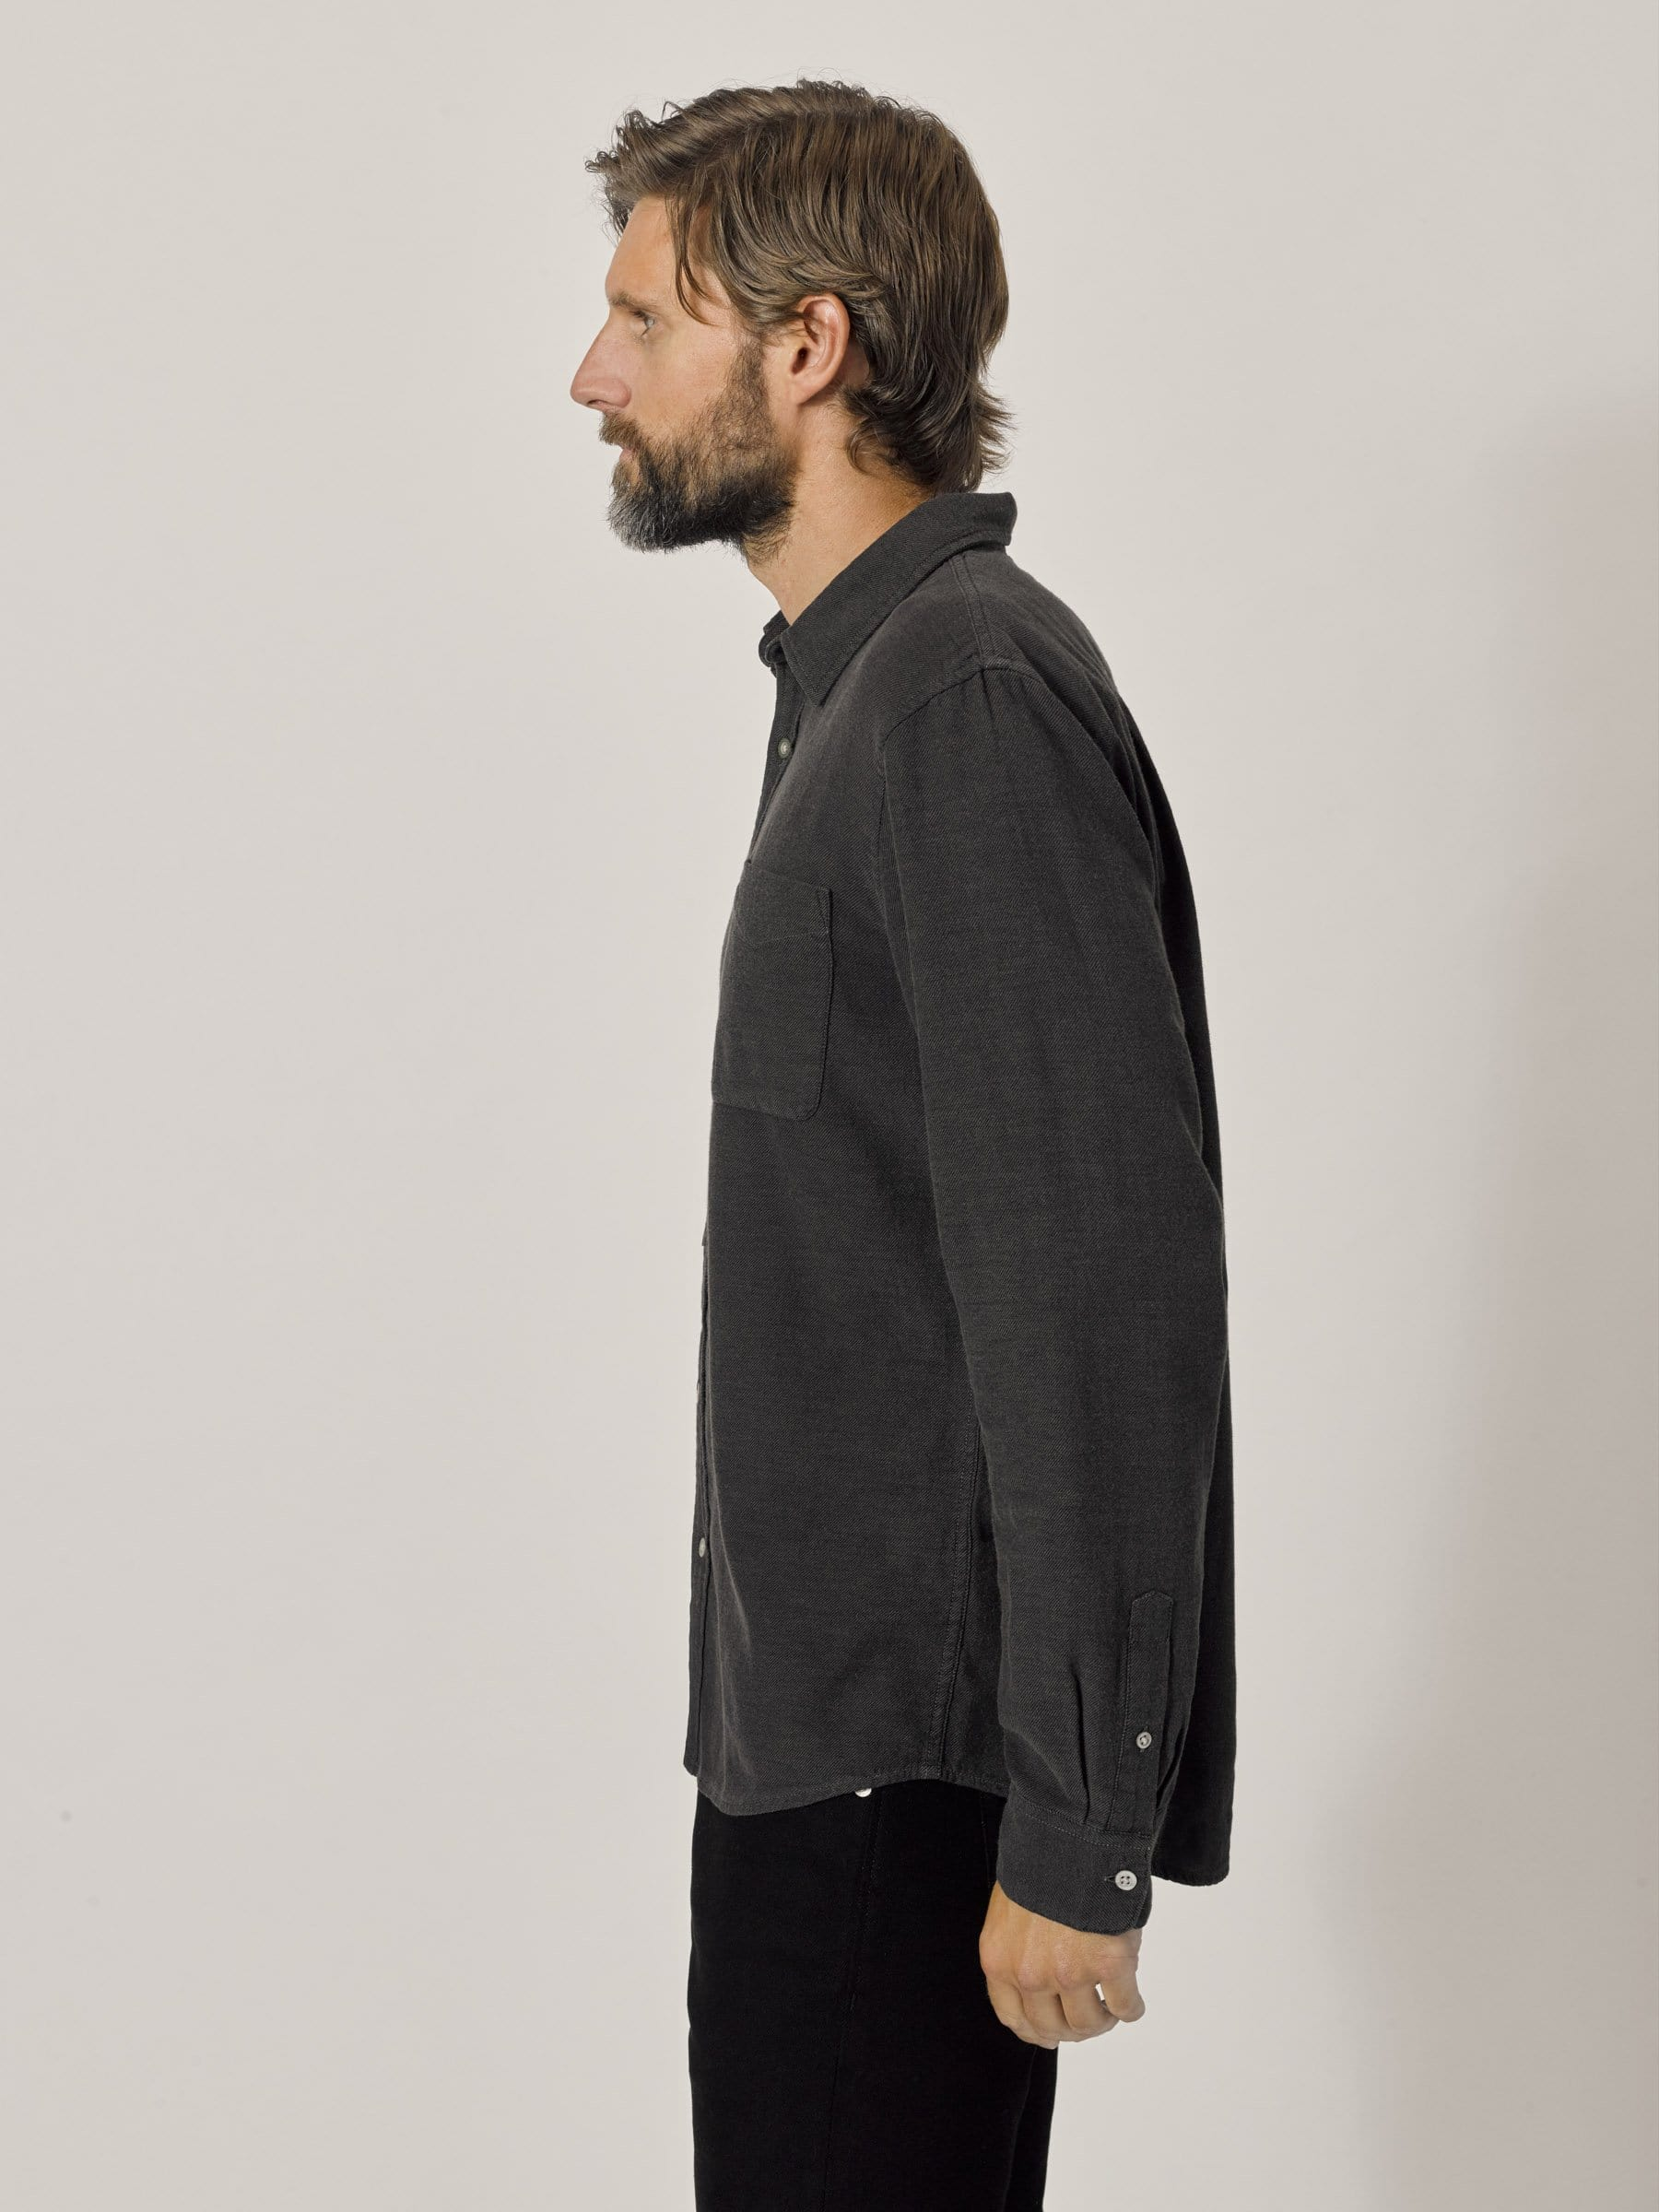 Buck Mason - Iron Pacific Twill Vintage One Pocket Shirt